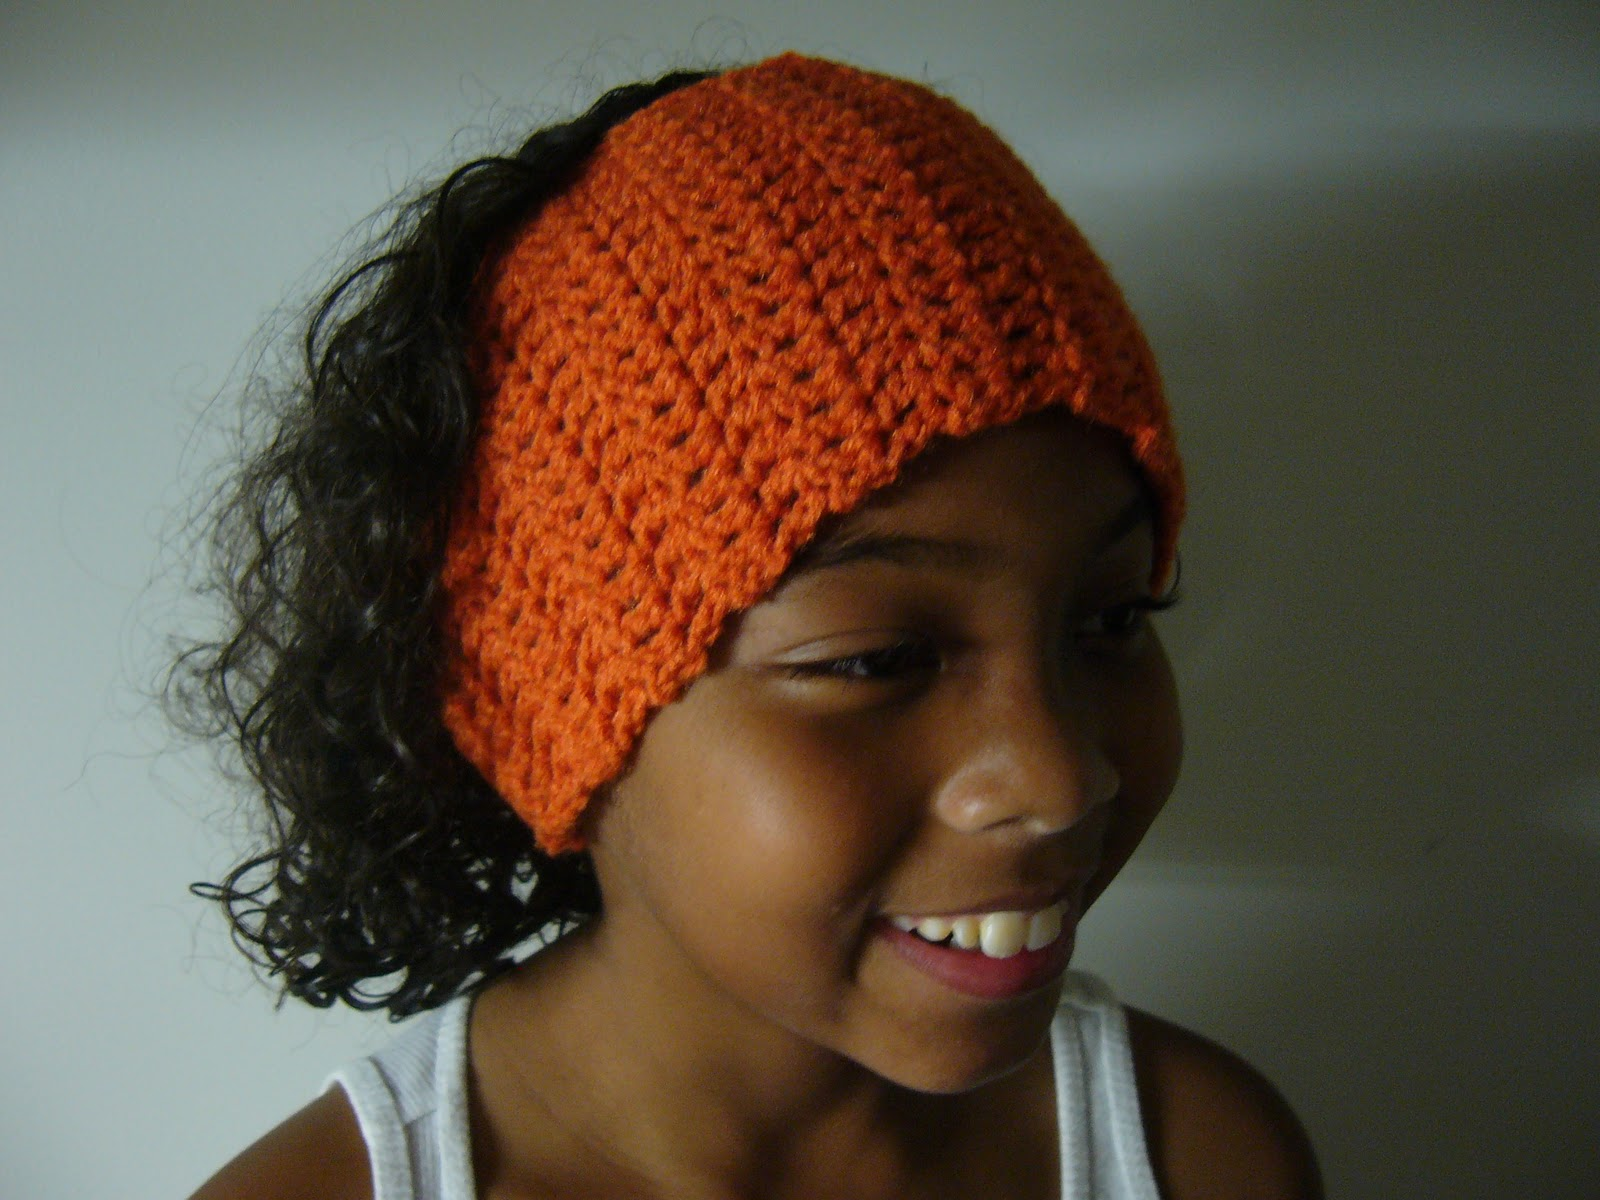 Crochet Patterns Head Warmers : Mixin it up with DaPerfectMix: Easy Head Warmer Pattern